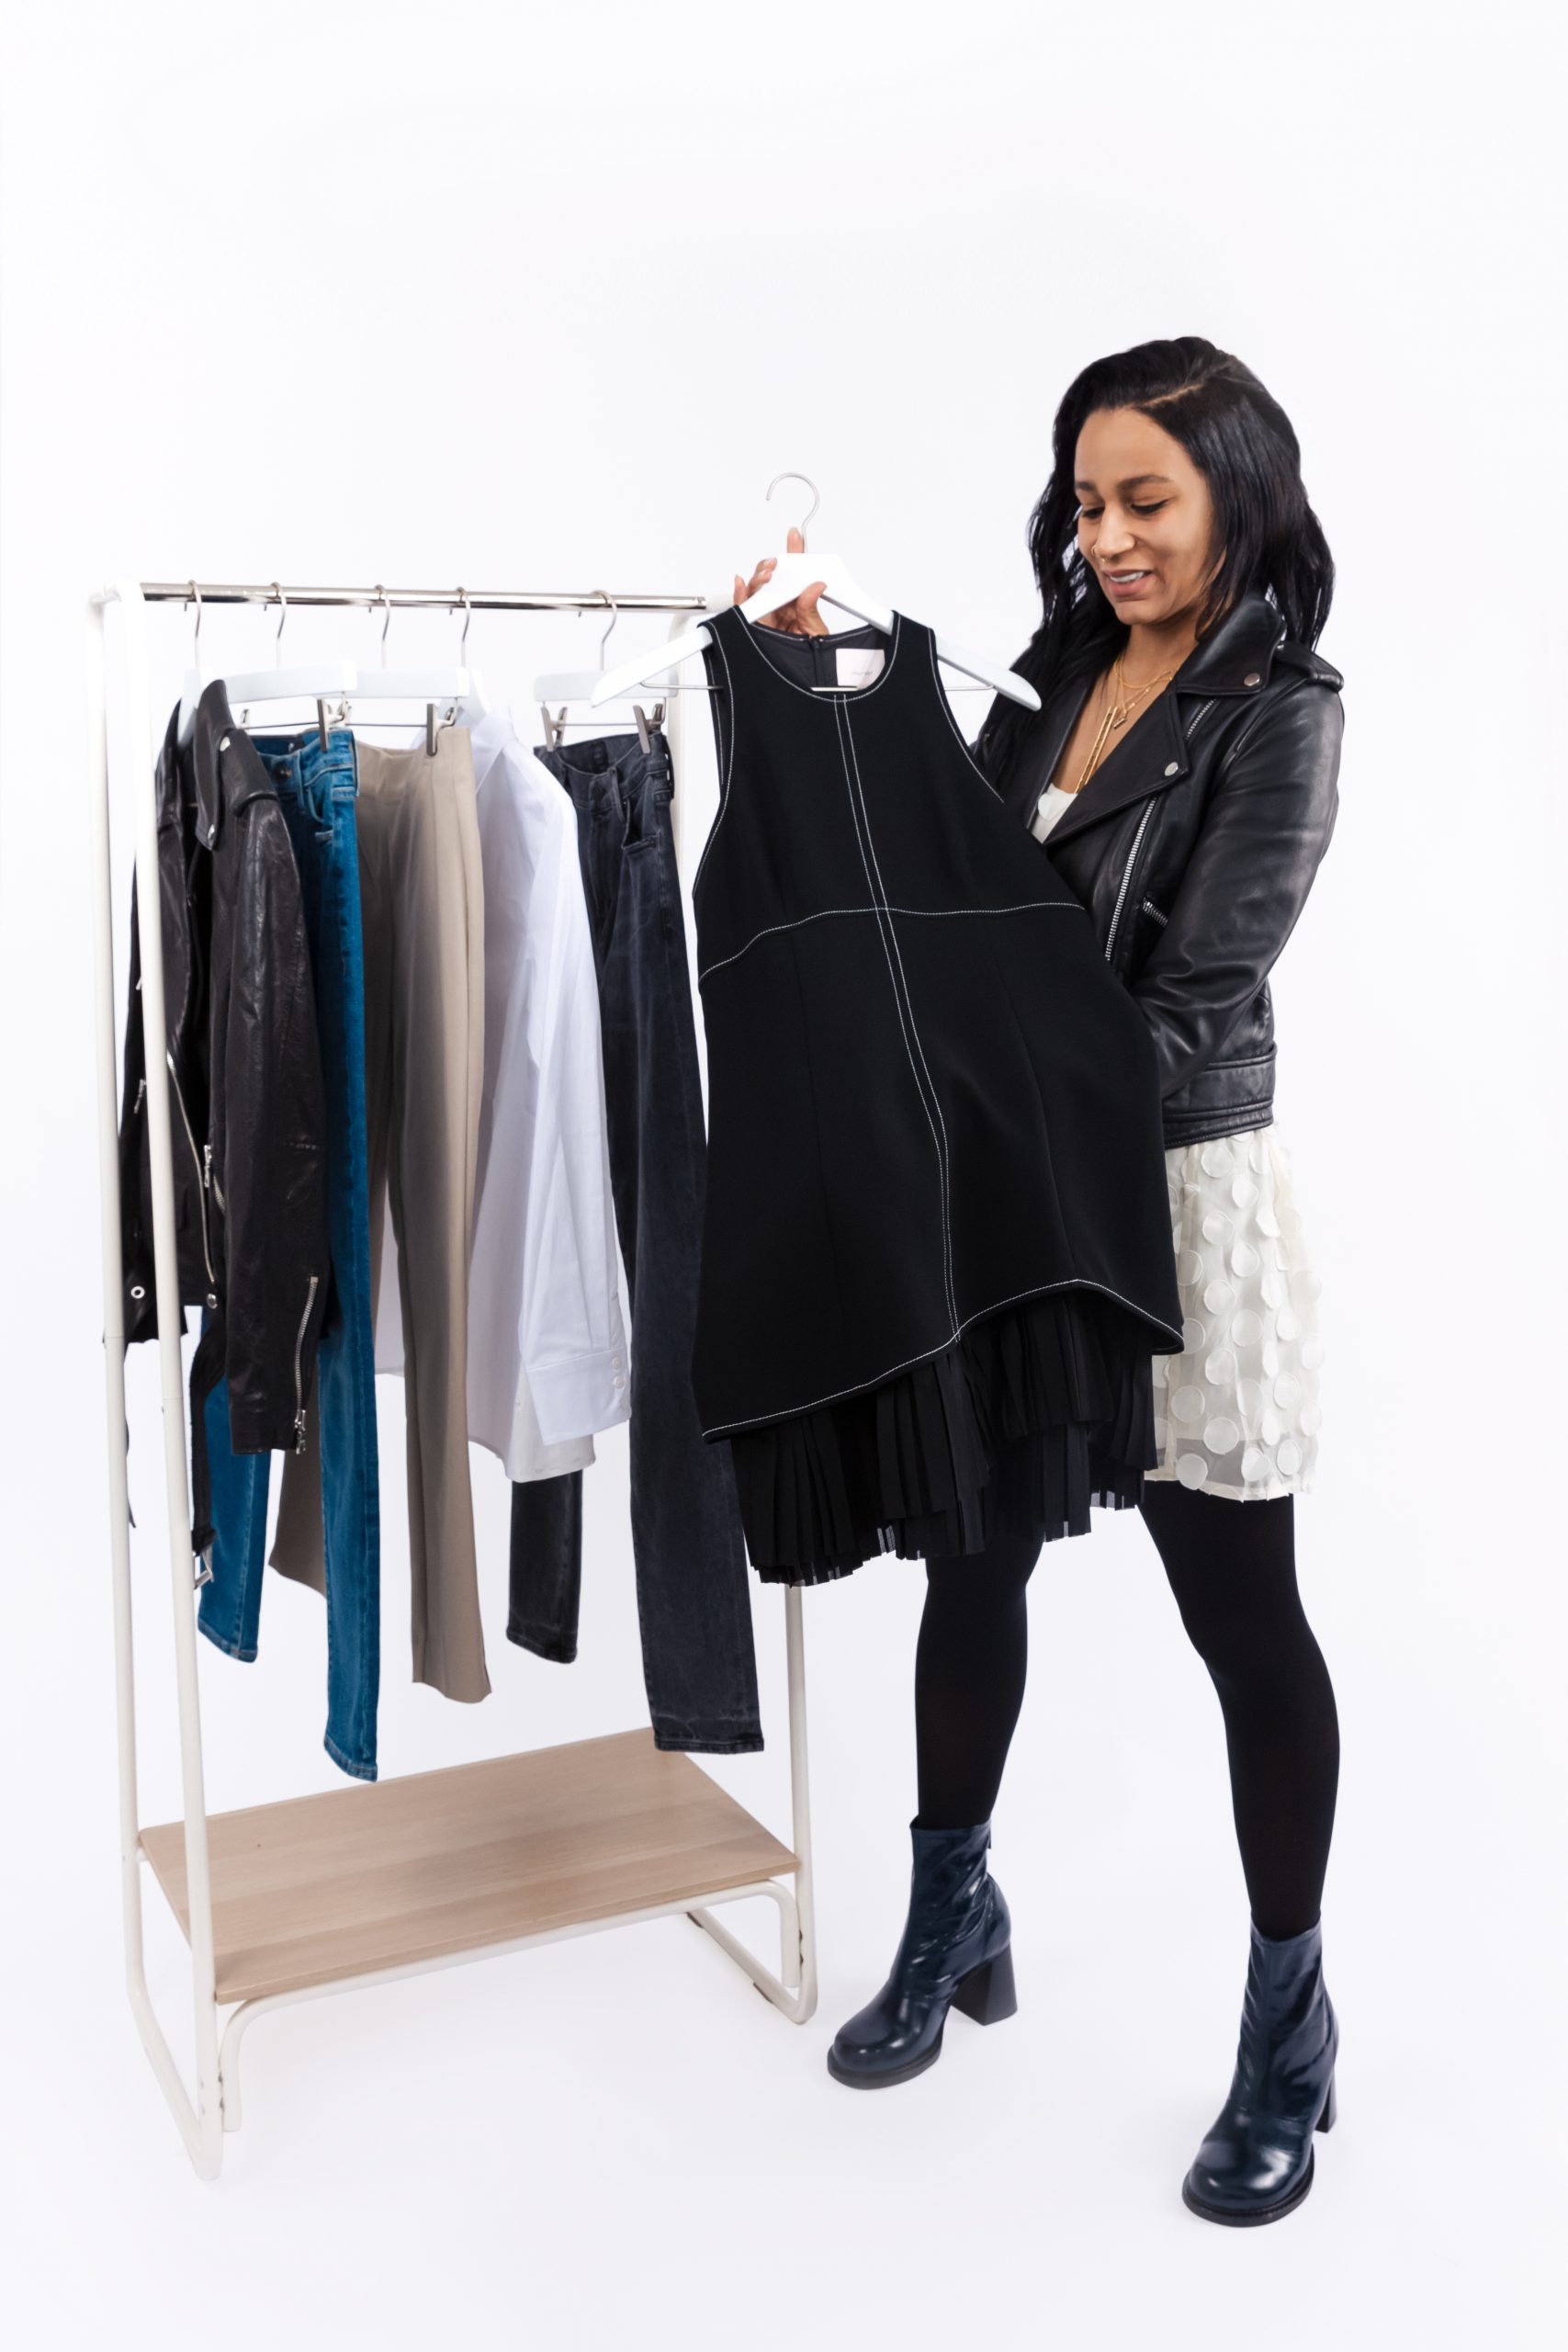 Investing in Closet Staples